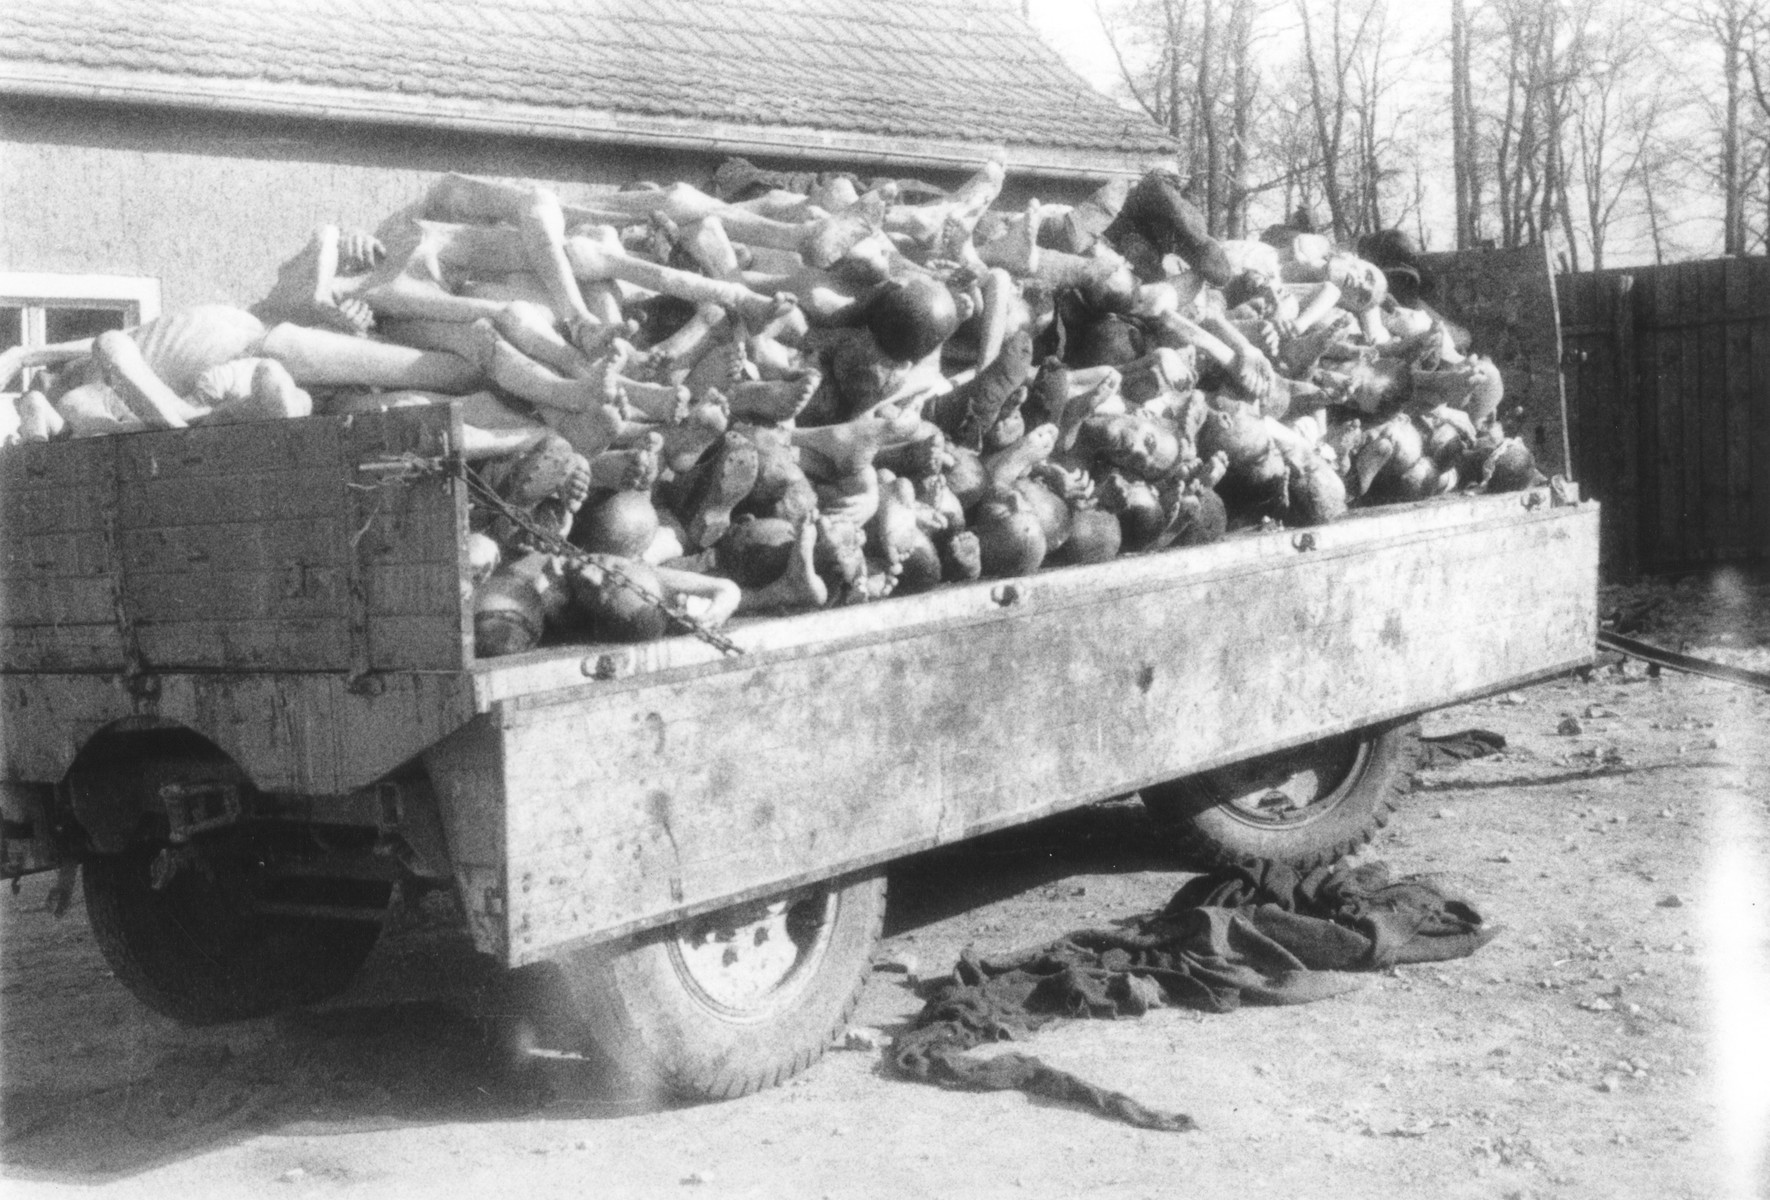 View of a wagon piled high with corpses outside the crematoria in the Buchenwald concentration camp.